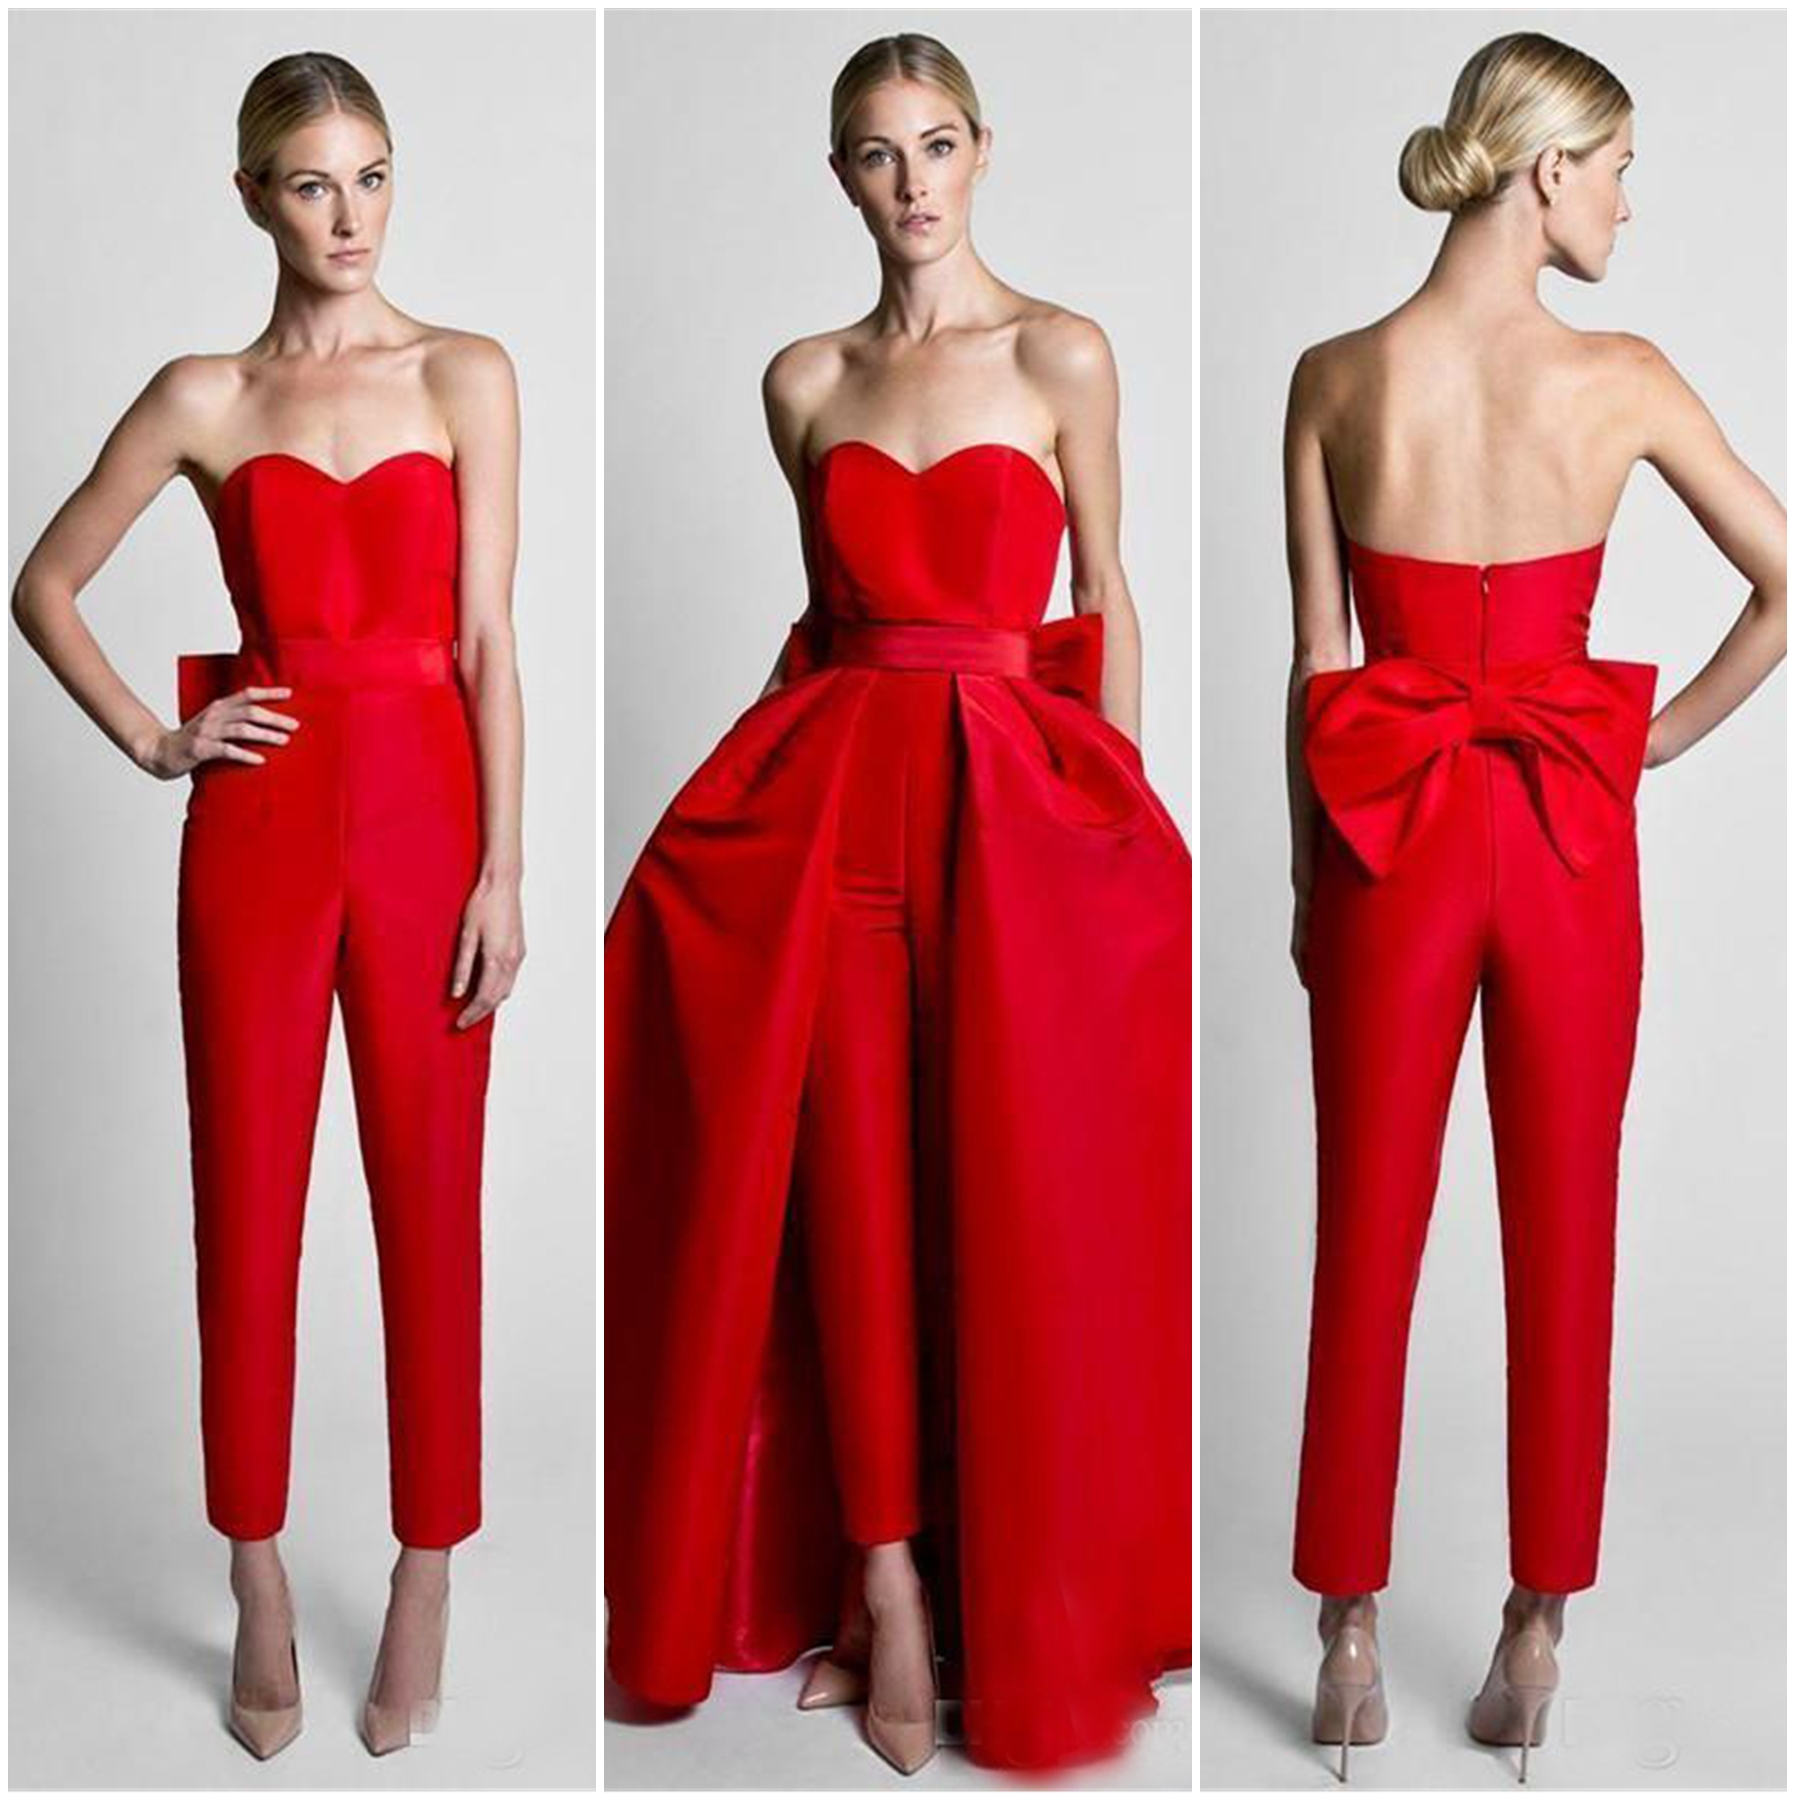 2020 New Hot Sale Red Jumpsuits Formal Evening Dresses With Detachable Skirt Sweetheart Prom Dresses Party Wear Pants for Women